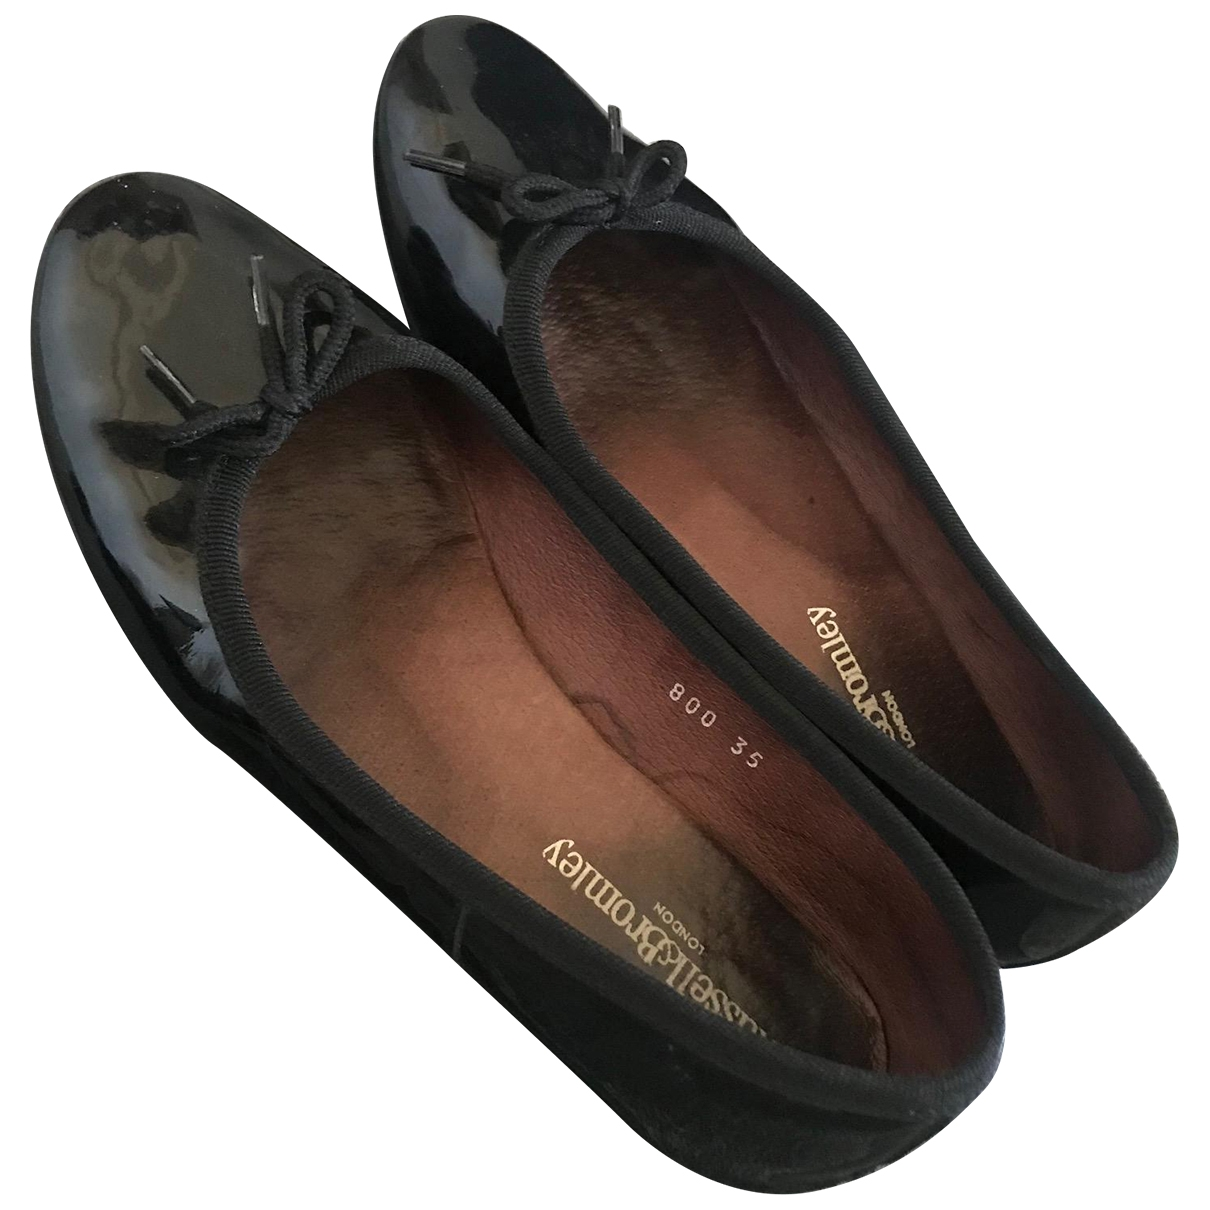 Russell & Bromley \N Black Patent leather Ballet flats for Women 35 EU